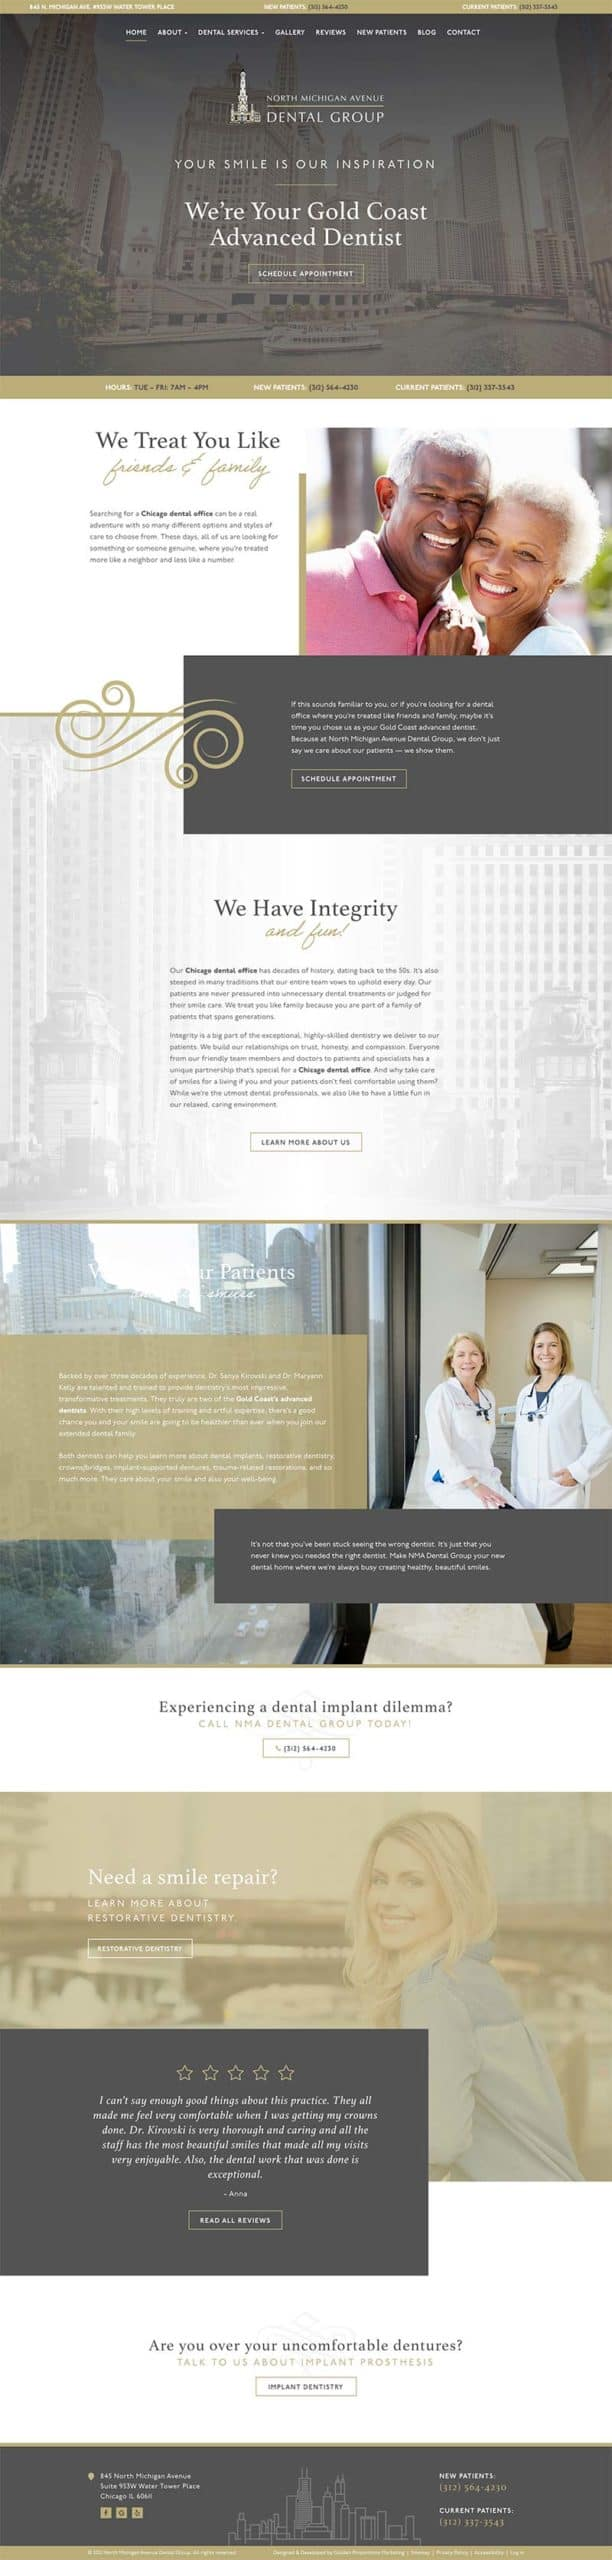 North Michigan Avenue Dental Group